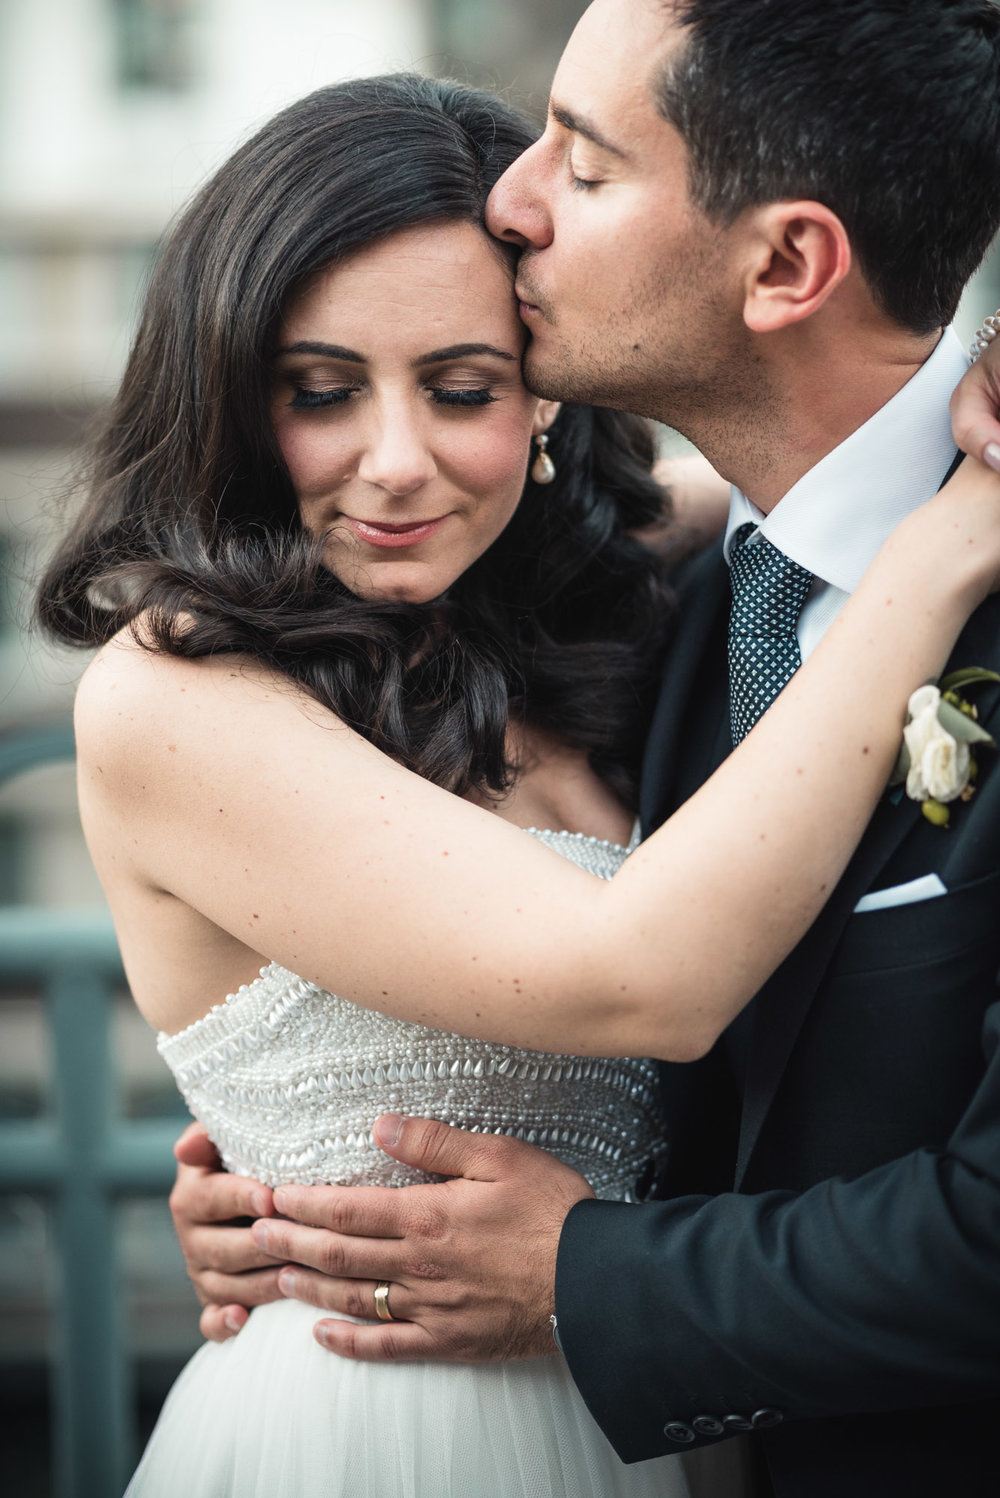 Bride and Groom kiss at reception